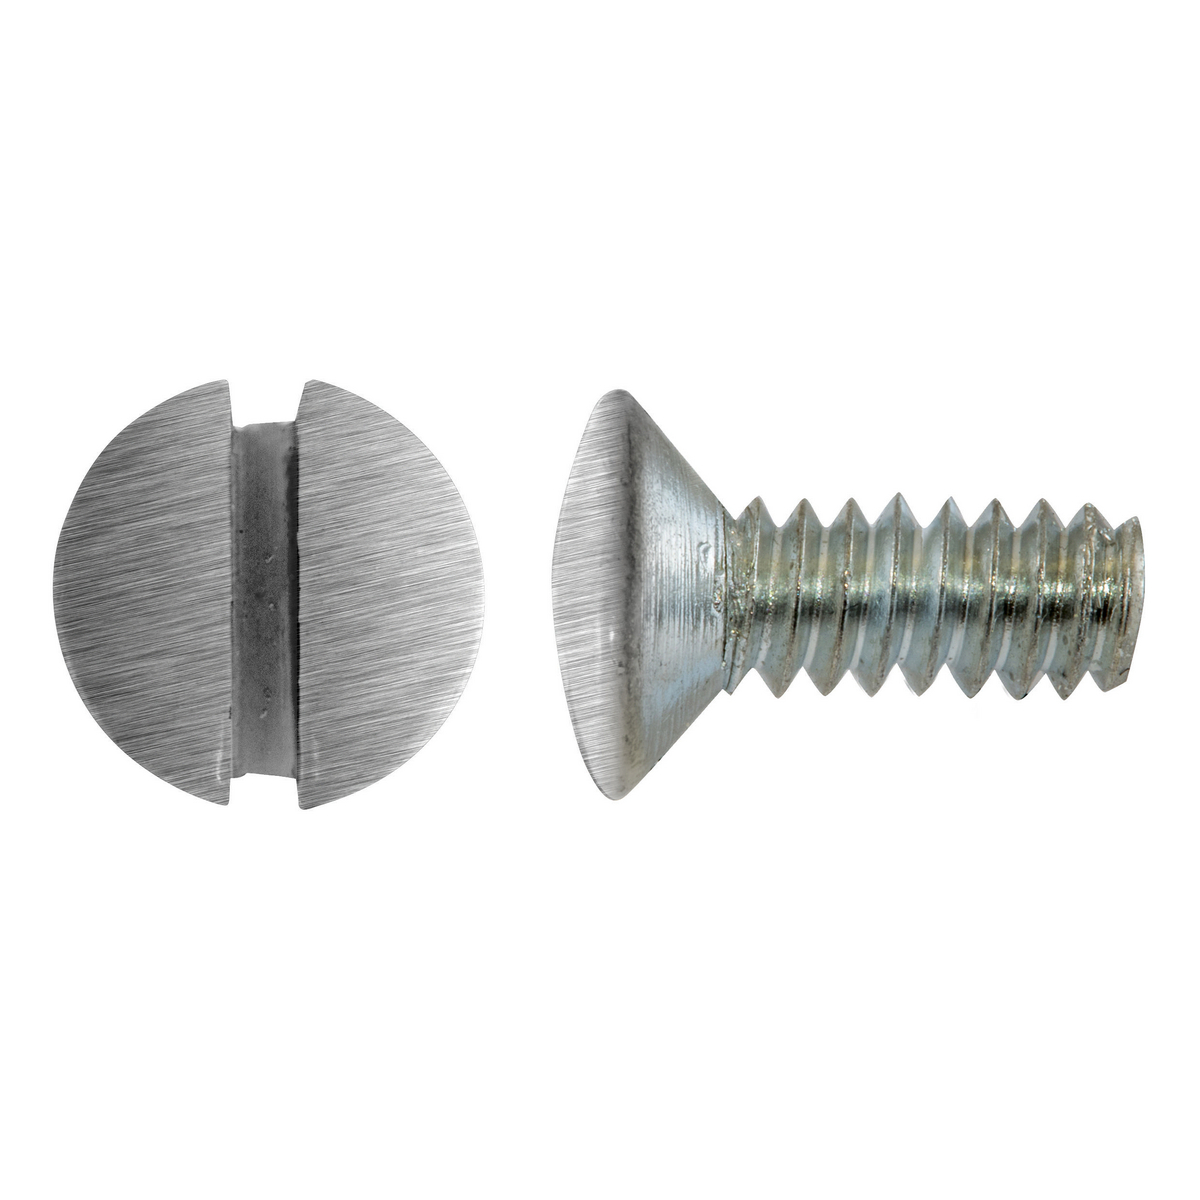 "W-PLATE SCREW, 3/8"", STAINLESS, 100 PACK"